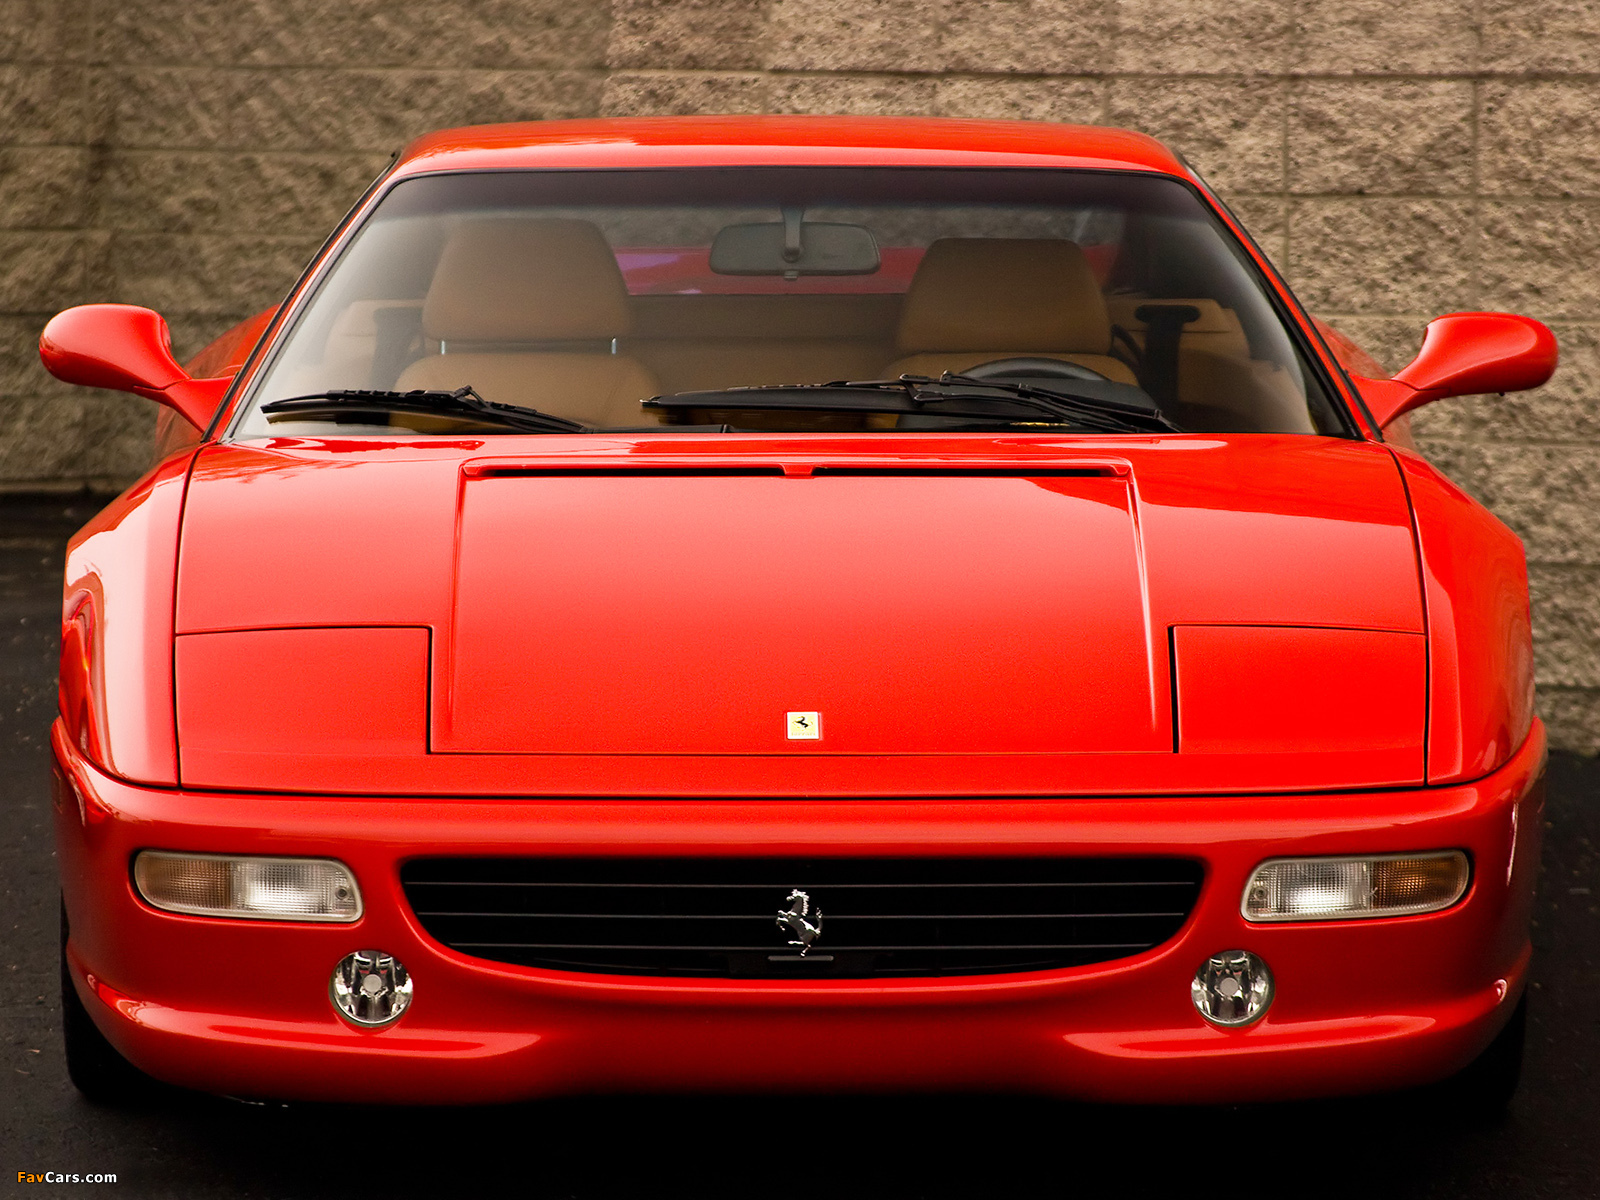 Ferrari F355 HD Wallpapers | Full HD Pictures